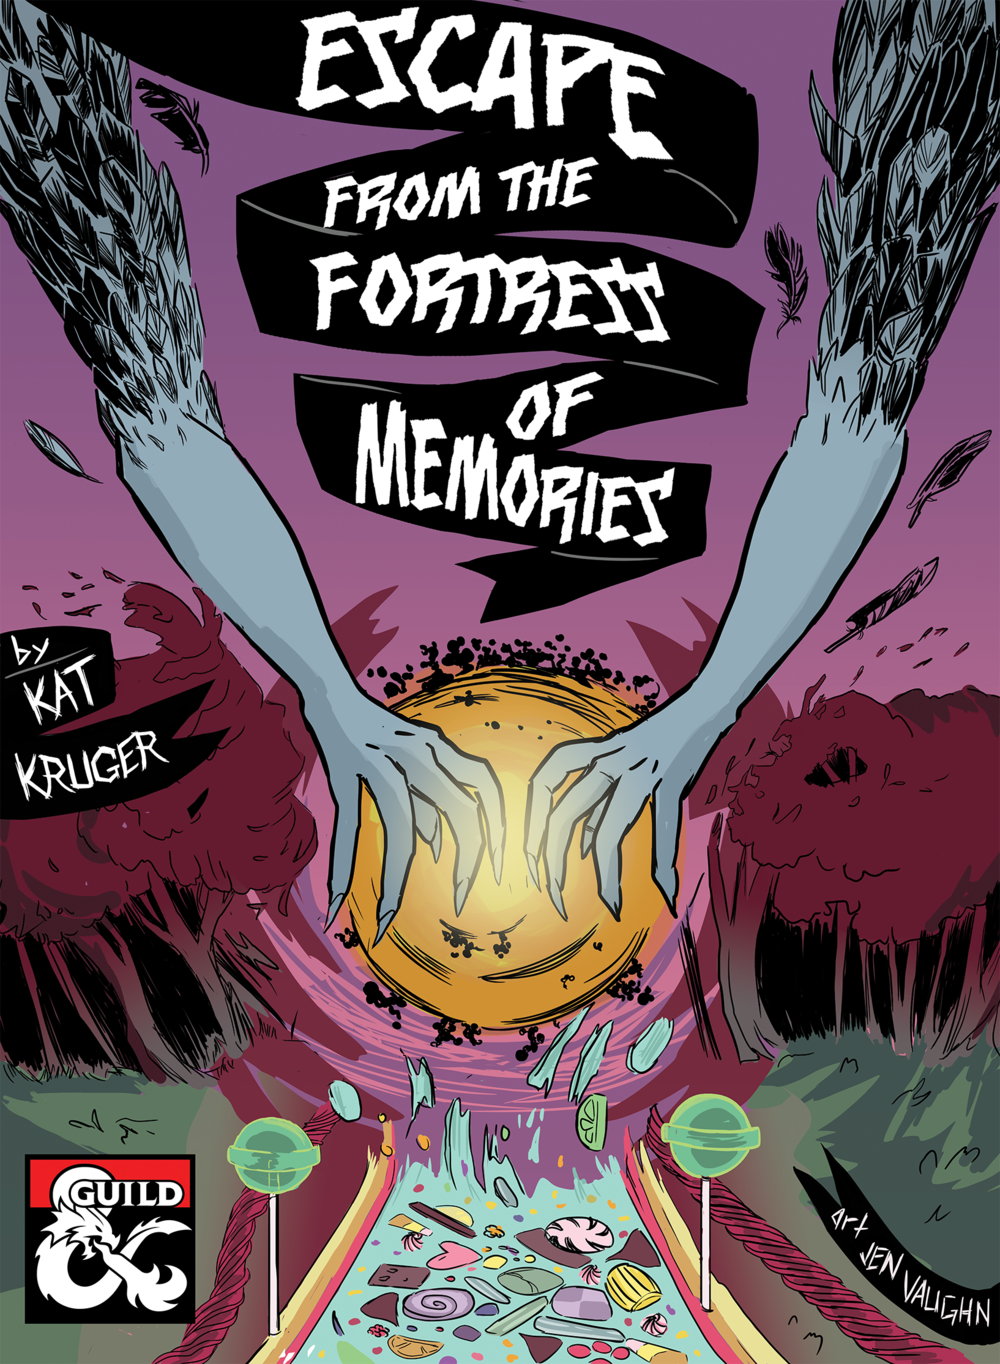 Escape from the Fortress of Memories - A two-hour adventure for 1st-4th level characters.In the bustling town of Phandalin, a young girl goes missing one night. The adventuring party is drawn into a strange dreamlike world by the whims of the Raven Queen. In order to escape, they must help the girl fight the very things that spawn from her imagination.